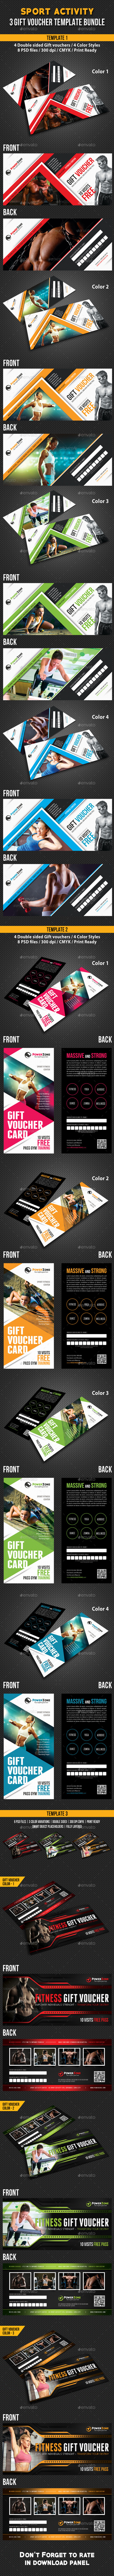 GraphicRiver 3 in 1 Sport Activity Gift Voucher Bundle 03 10455421